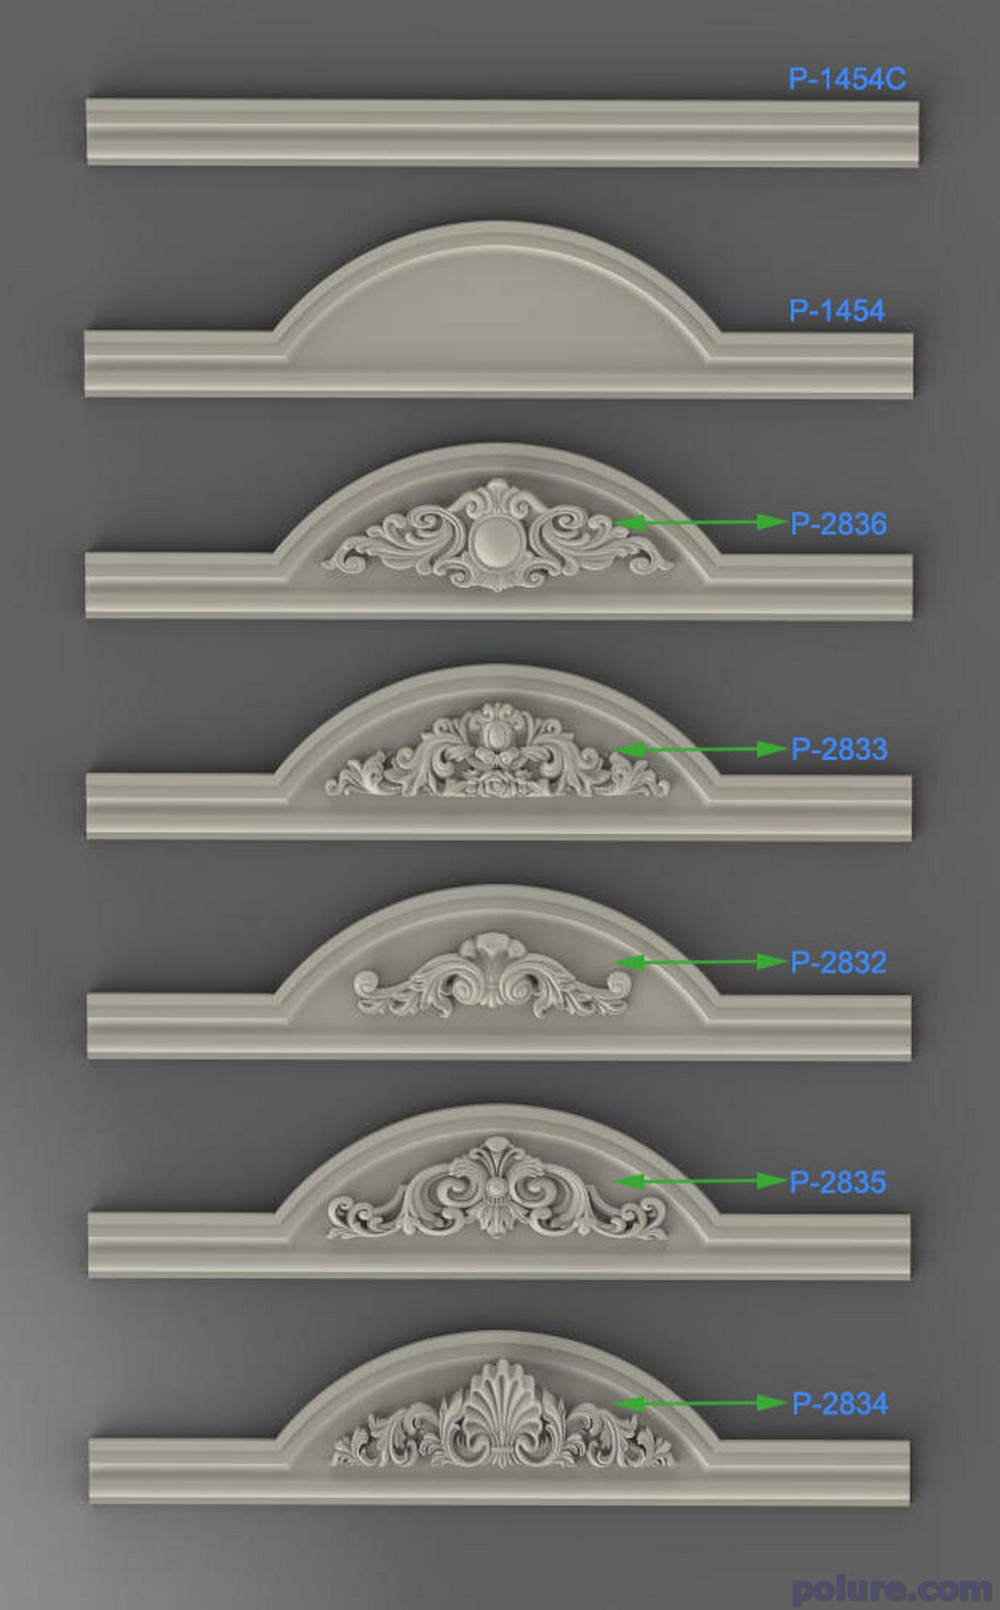 New polyurethane door crown six different crown models.